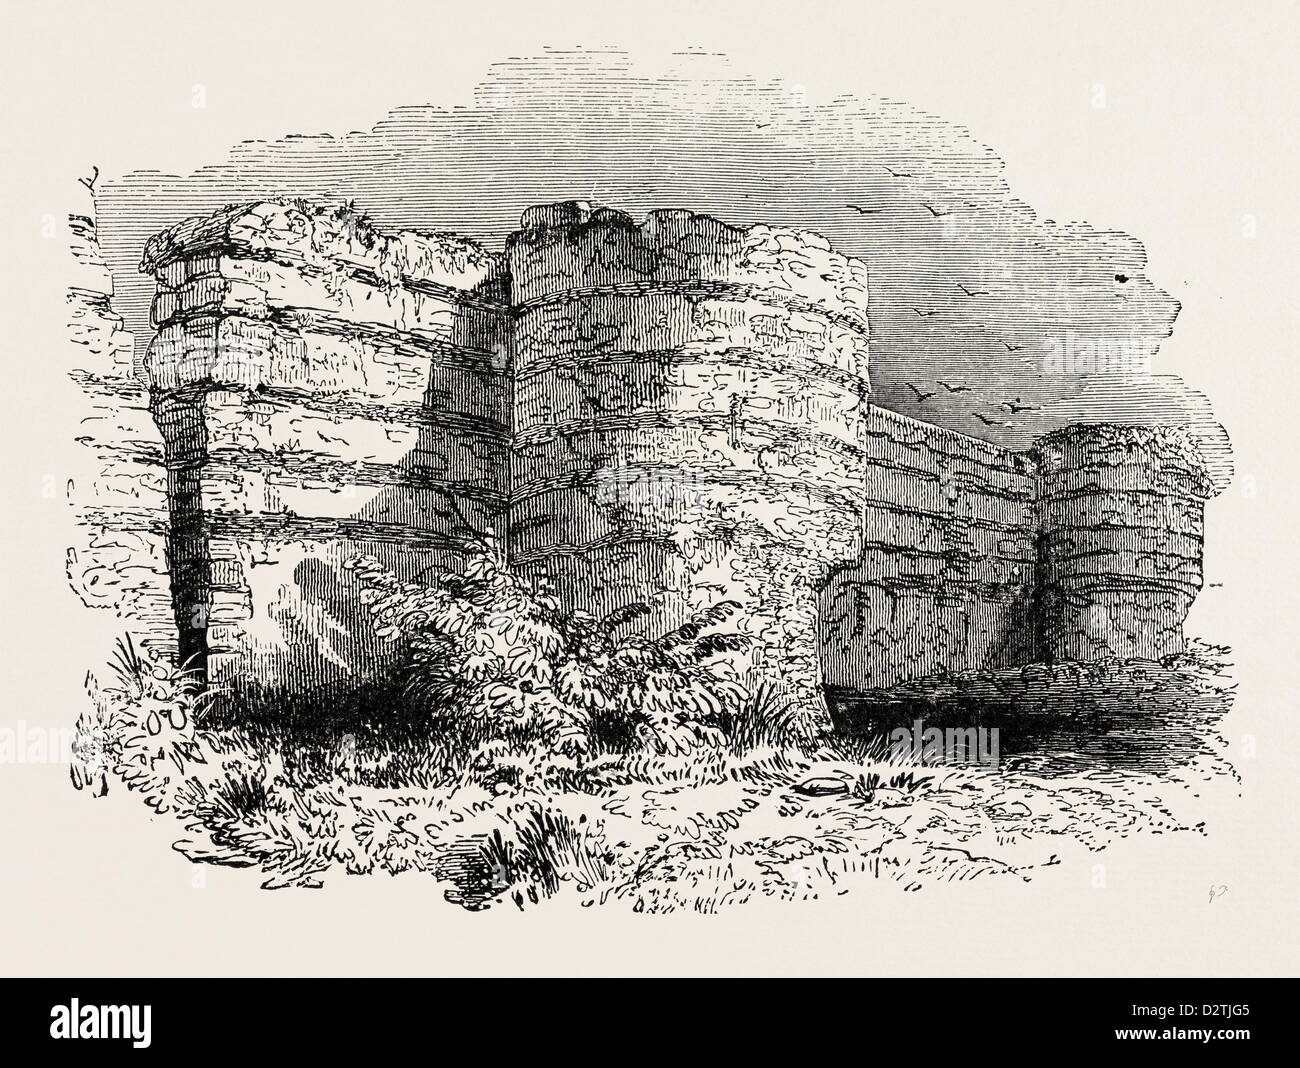 ROMAN MASONRY REMAINS OF FORTRESS WALLS IN BRITAIN. - Stock Image